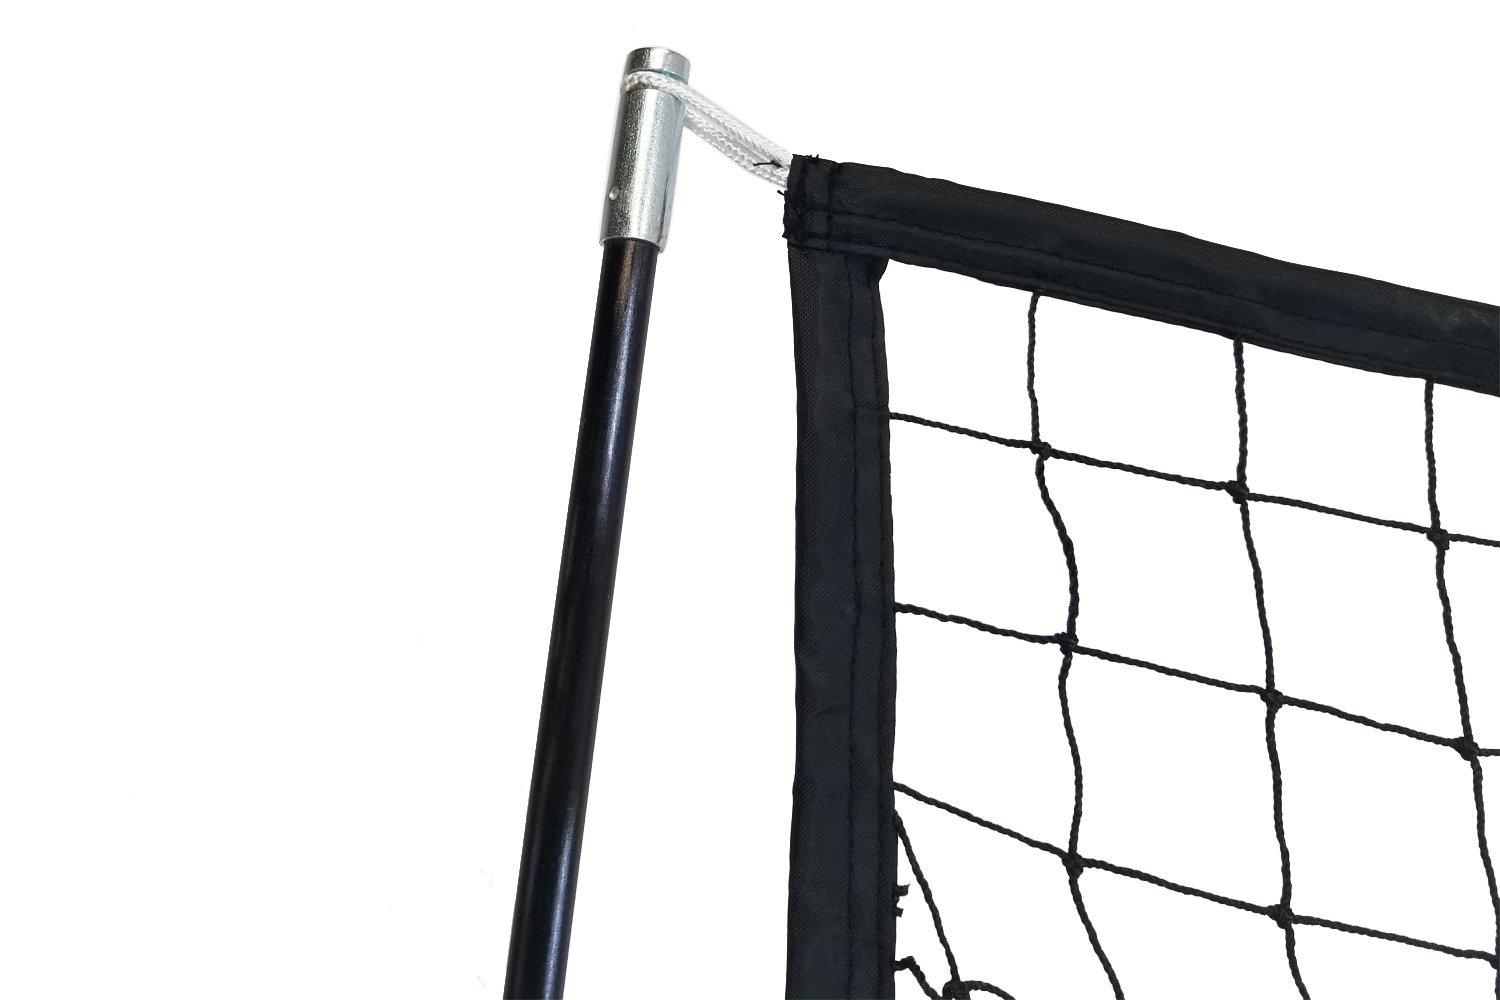 Sport Nets Baseball Softball Hitting Net – 7 x 7 Practice Large Mouth Net with Bow Frame